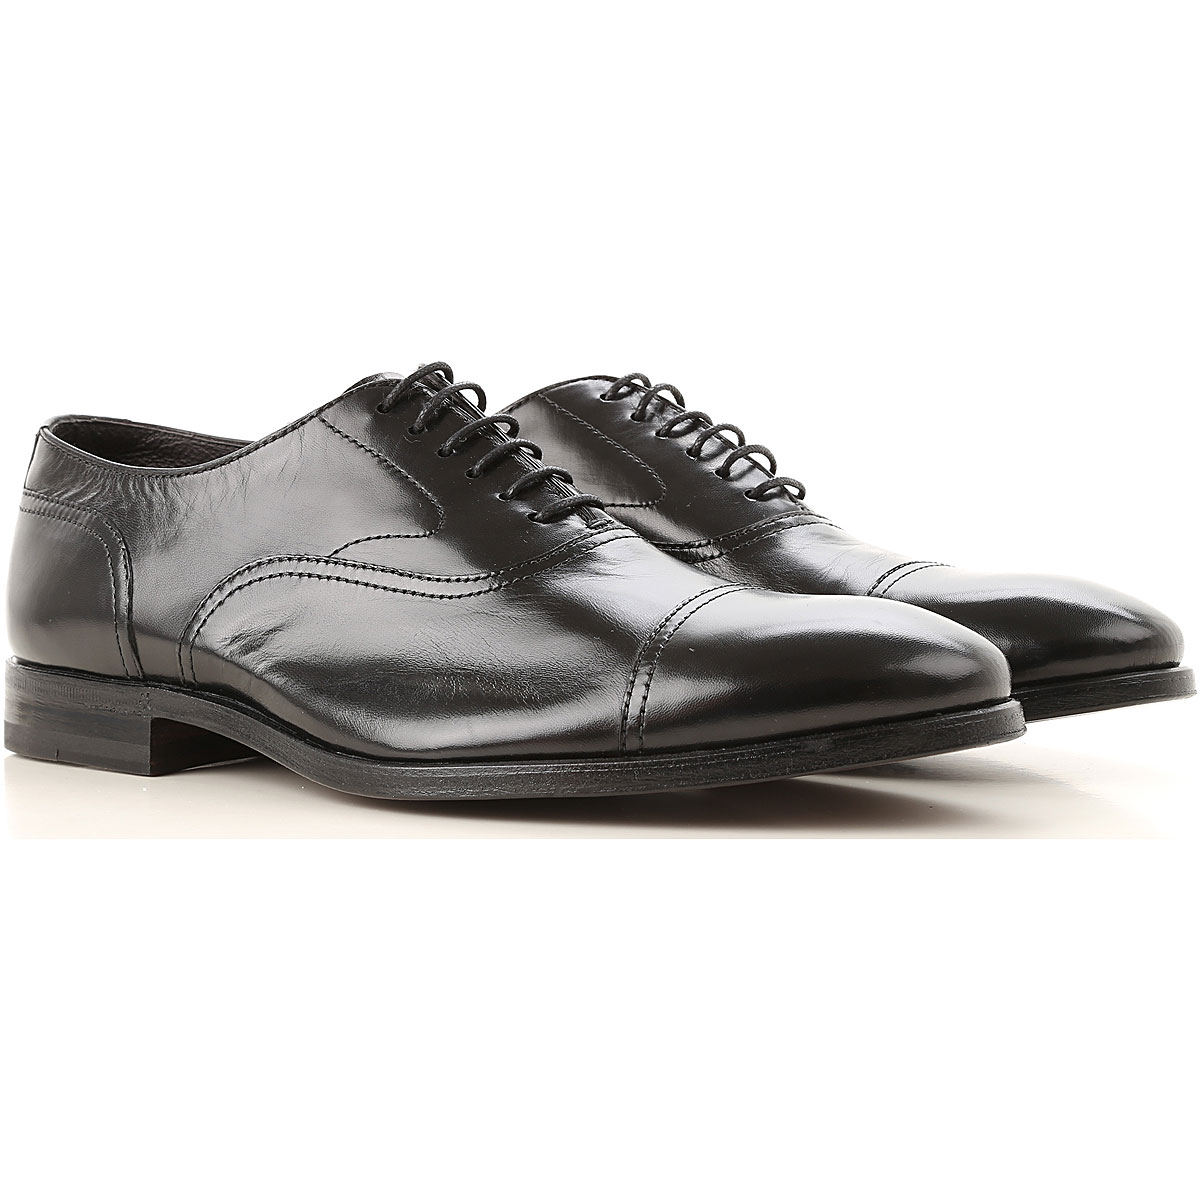 Henderson Lace Up Shoes for Men Oxfords, Derbies and Brogues On Sale, Black, Leather, 2019, 10 10.5 11 11.5 7 7.5 8 9 9.5